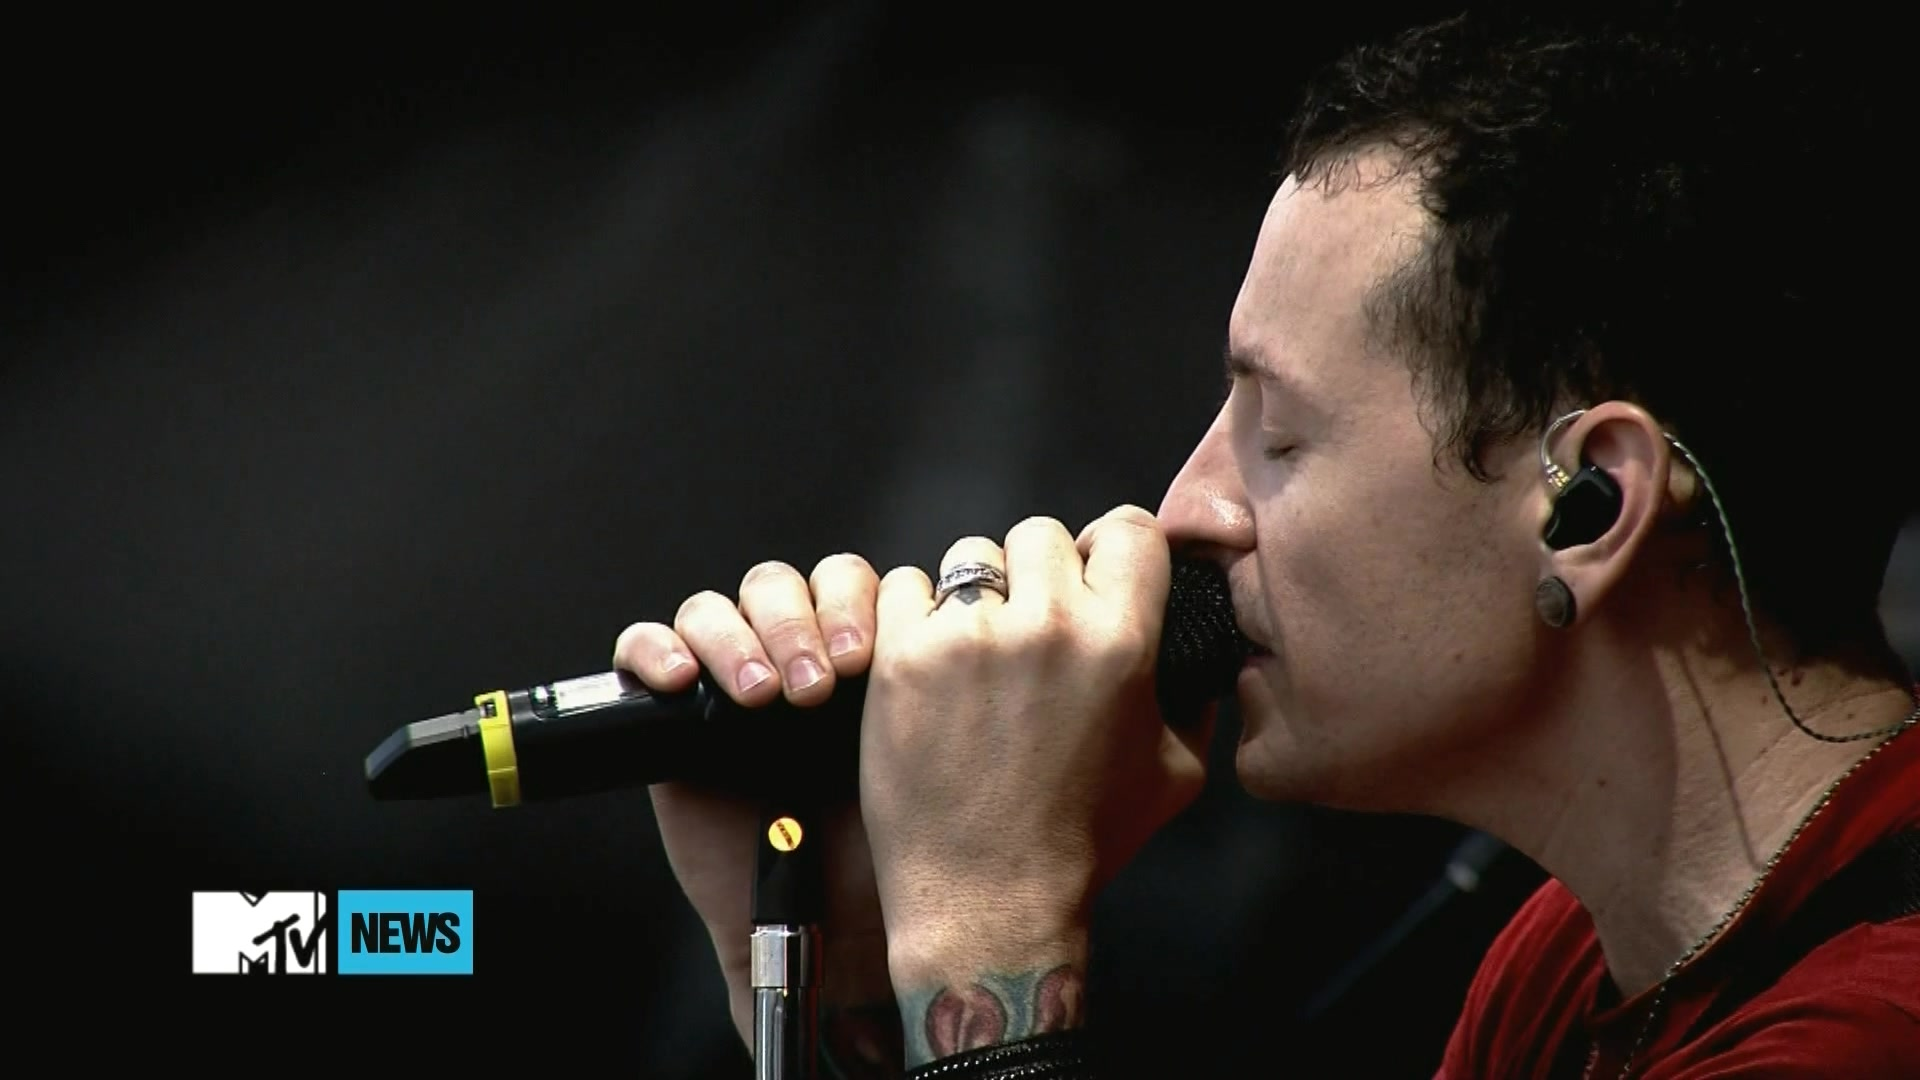 Linkin Park 2011-06-23 MTV News Exclusive, Red Square, Moscow, Russia